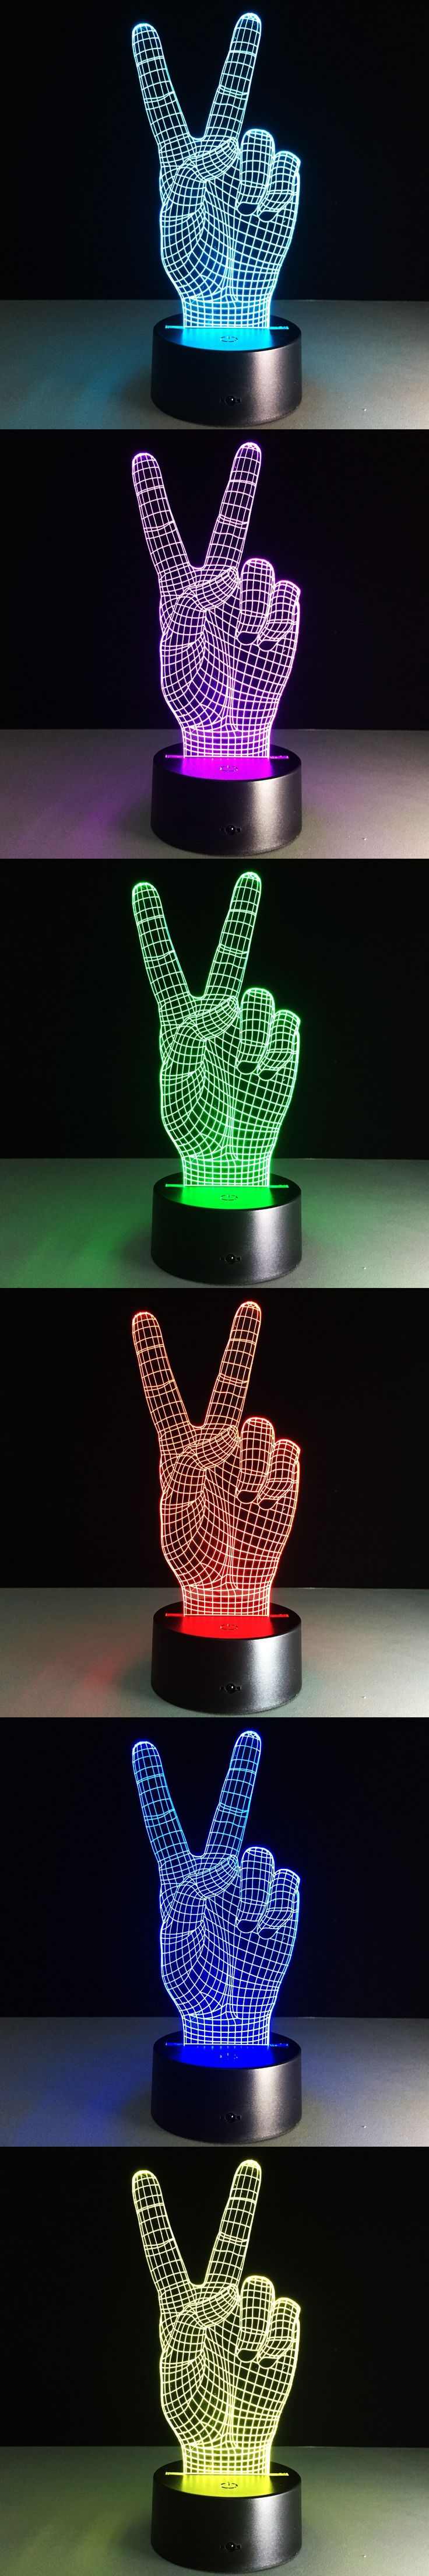 3D LED Hand Victory Light Colorful Touch Visual Lamp Decoration Atmosphere hologram illusion Table Lamp Micro USB Mood Bulbing